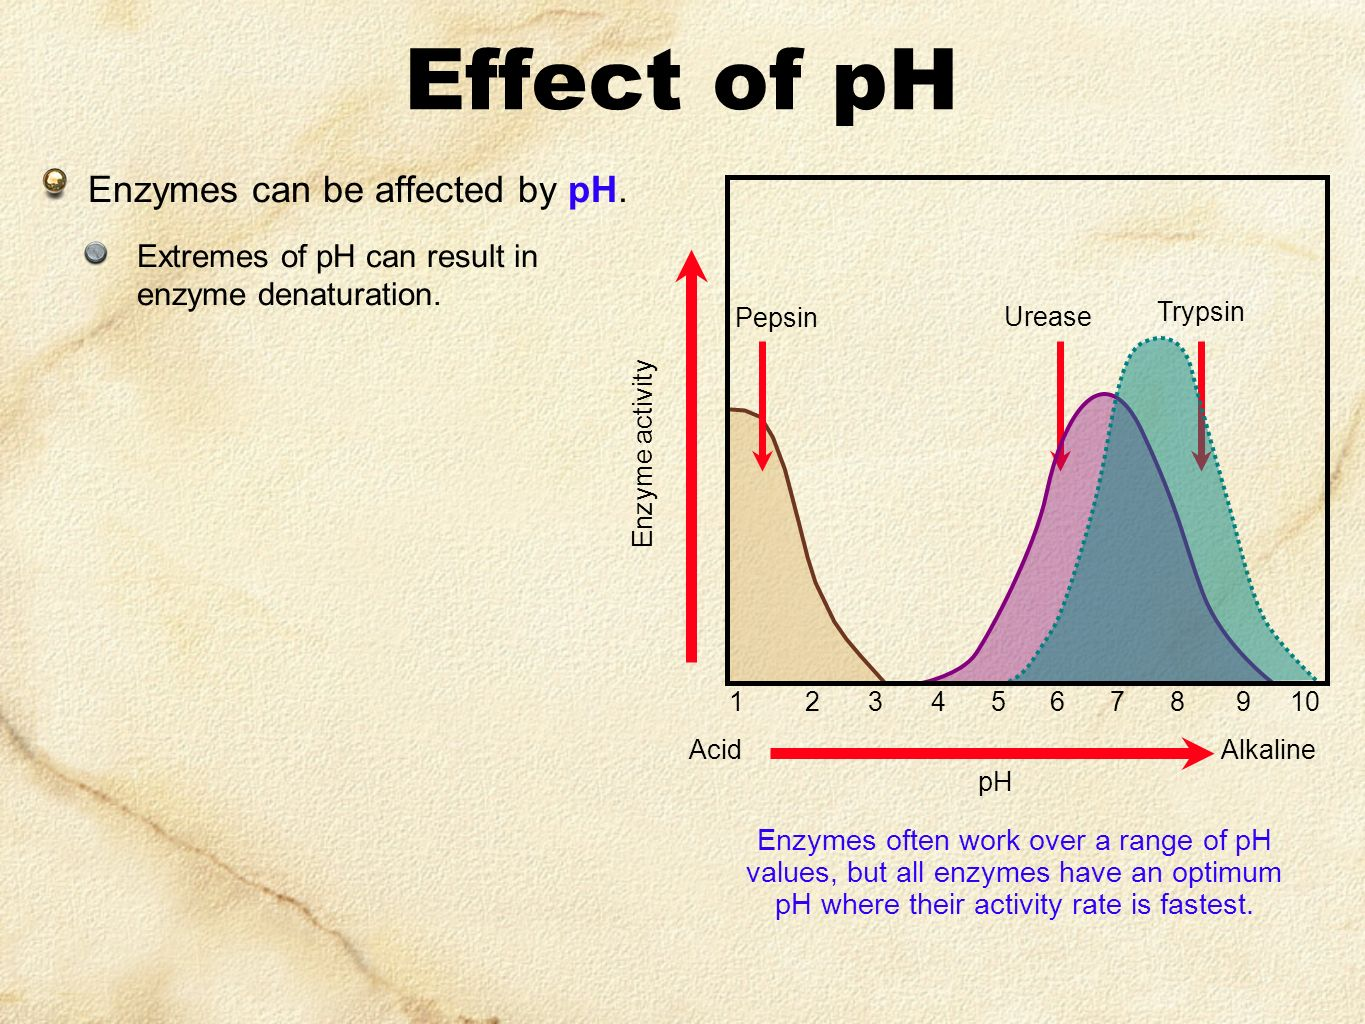 the effects of pepsin vs trypsin There are three main differencesph:pepsin is active or shows maximum activity at acidic ph of 15 while trypsin is active at an basic ph of 78source:pepsin is secreted by the mucous lining of the stomuch region while trypsin is secreted by the pancreas and helps in digestion of food in small intestinemode of action:pepsin mainly helps in.